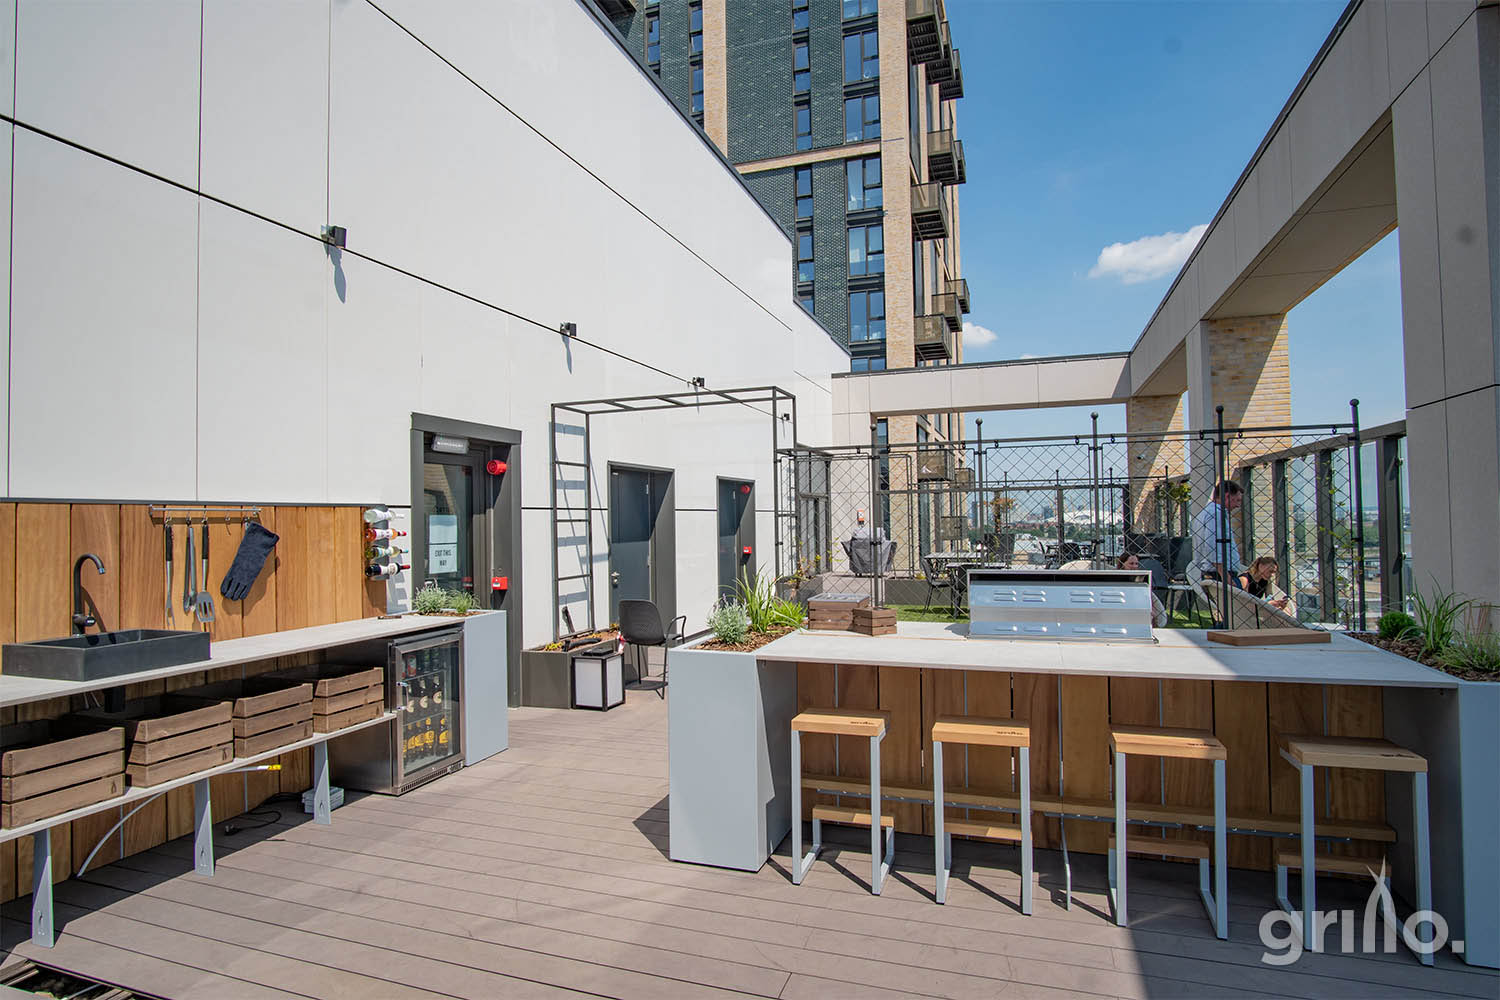 Sunny Grillo Roof Terrace kitchen with island electric grills for roof terraces